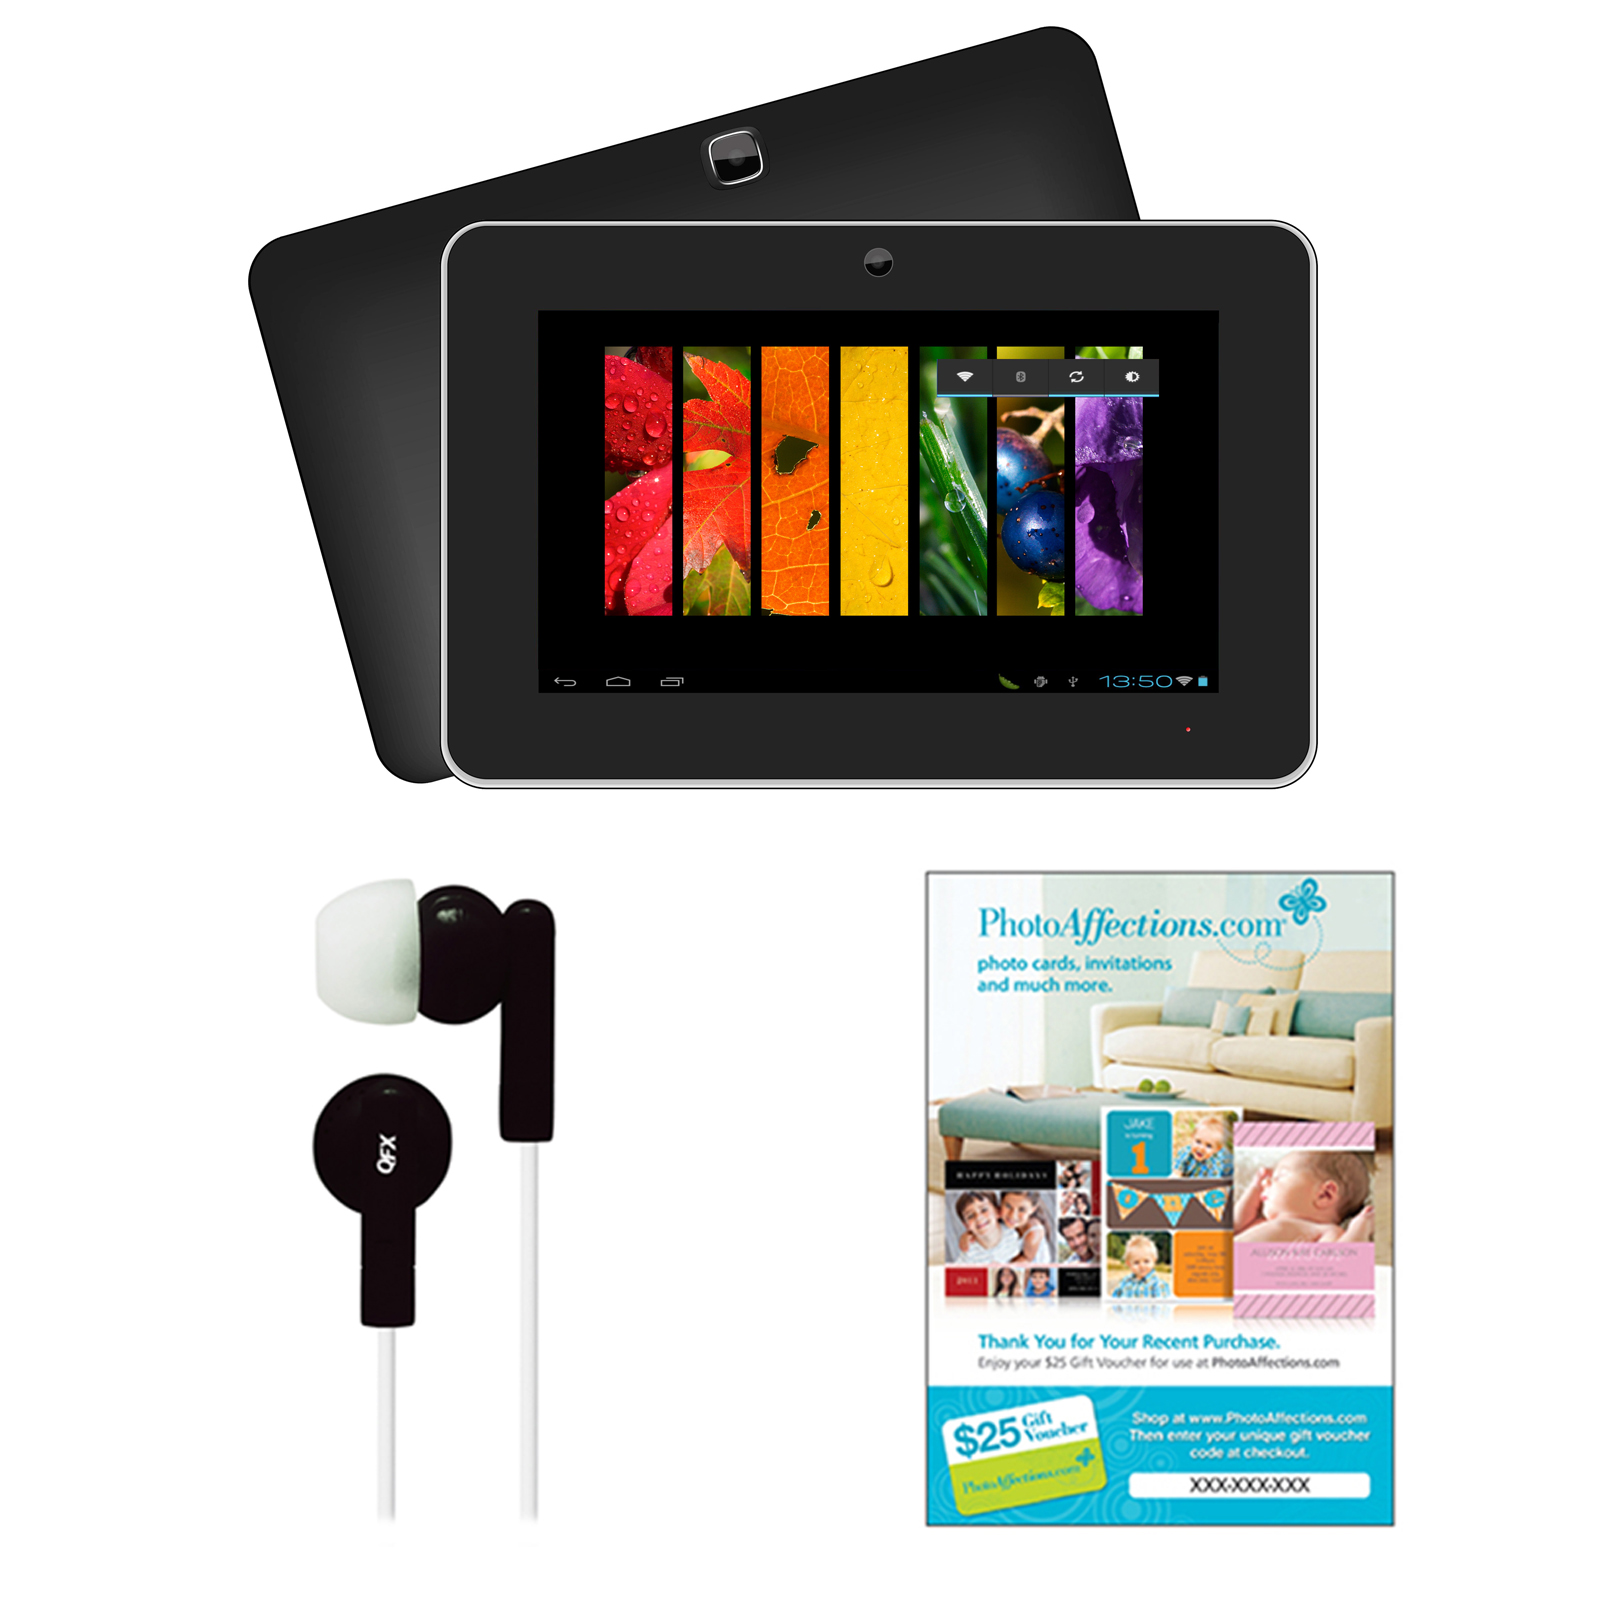 Supersonic 9 Android 4.1 Touch Screen Tablet with Earbuds...